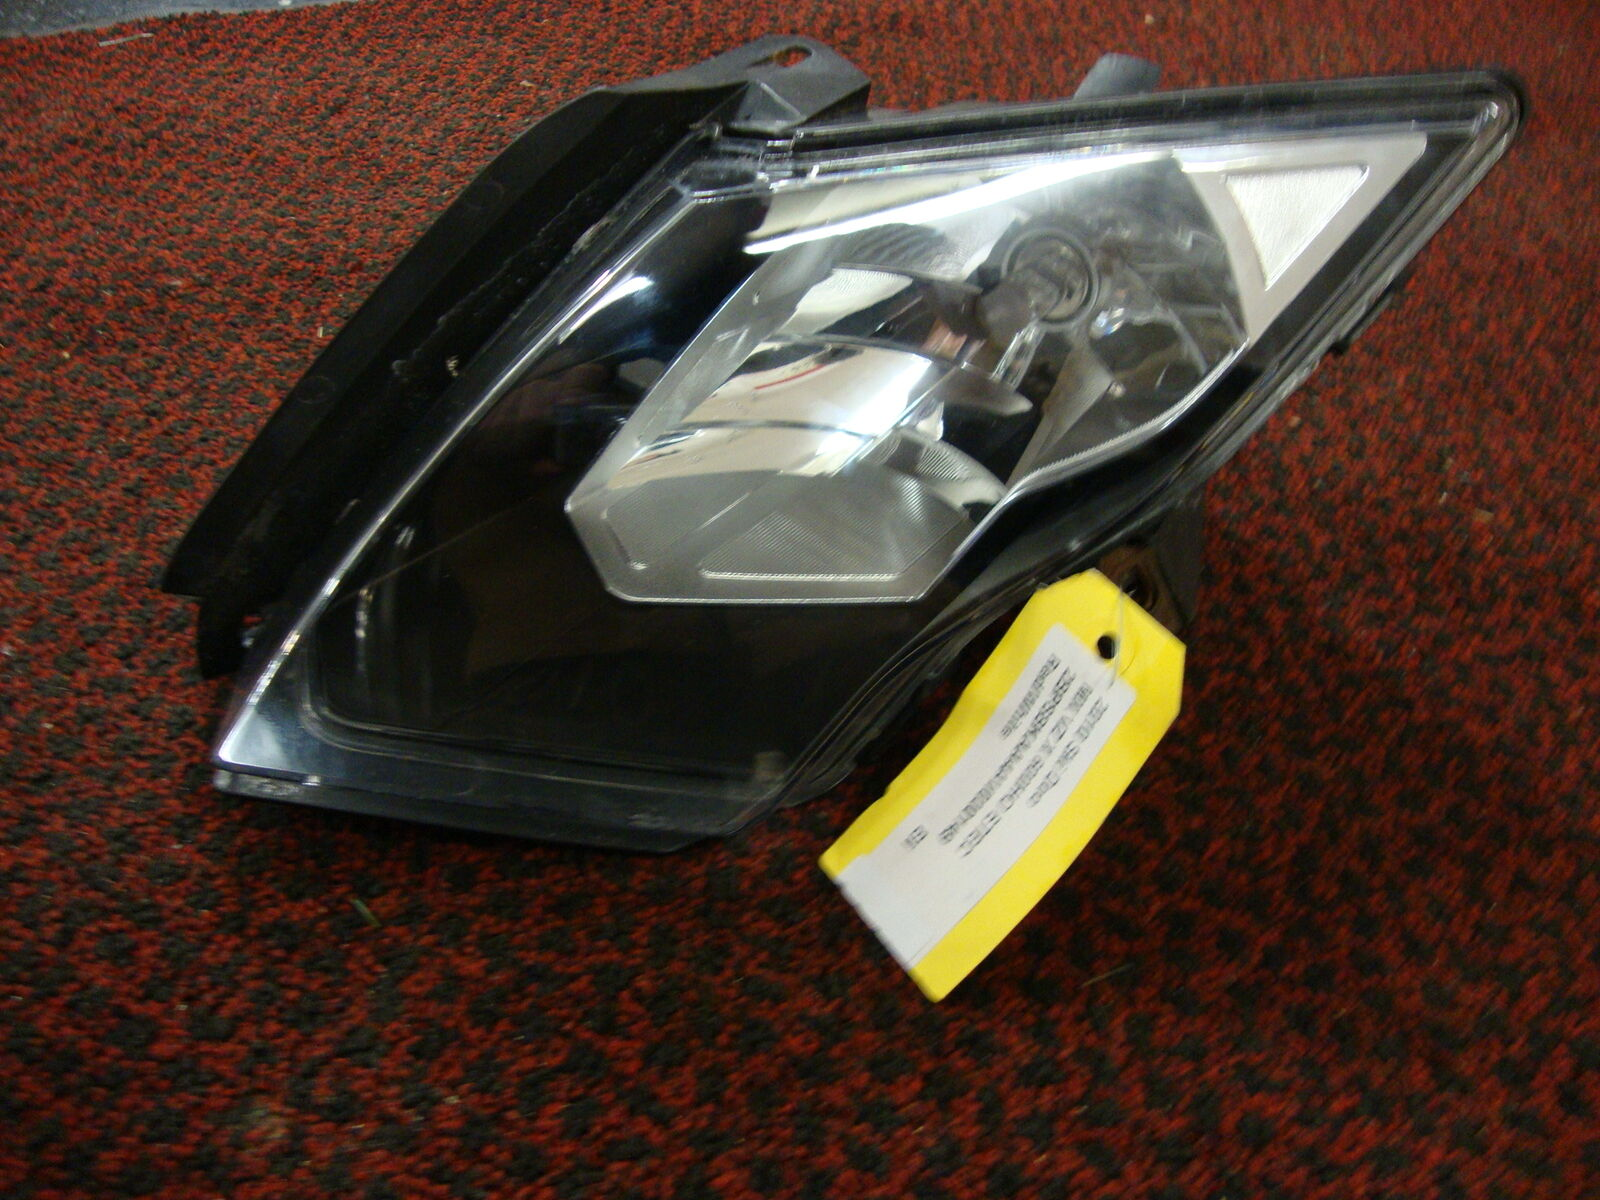 2010 Ski-Doo MXZ X 600 HO E-TEC FRONT LEFT HEADLIGHT HEAD LIGHT LAMP 517304195